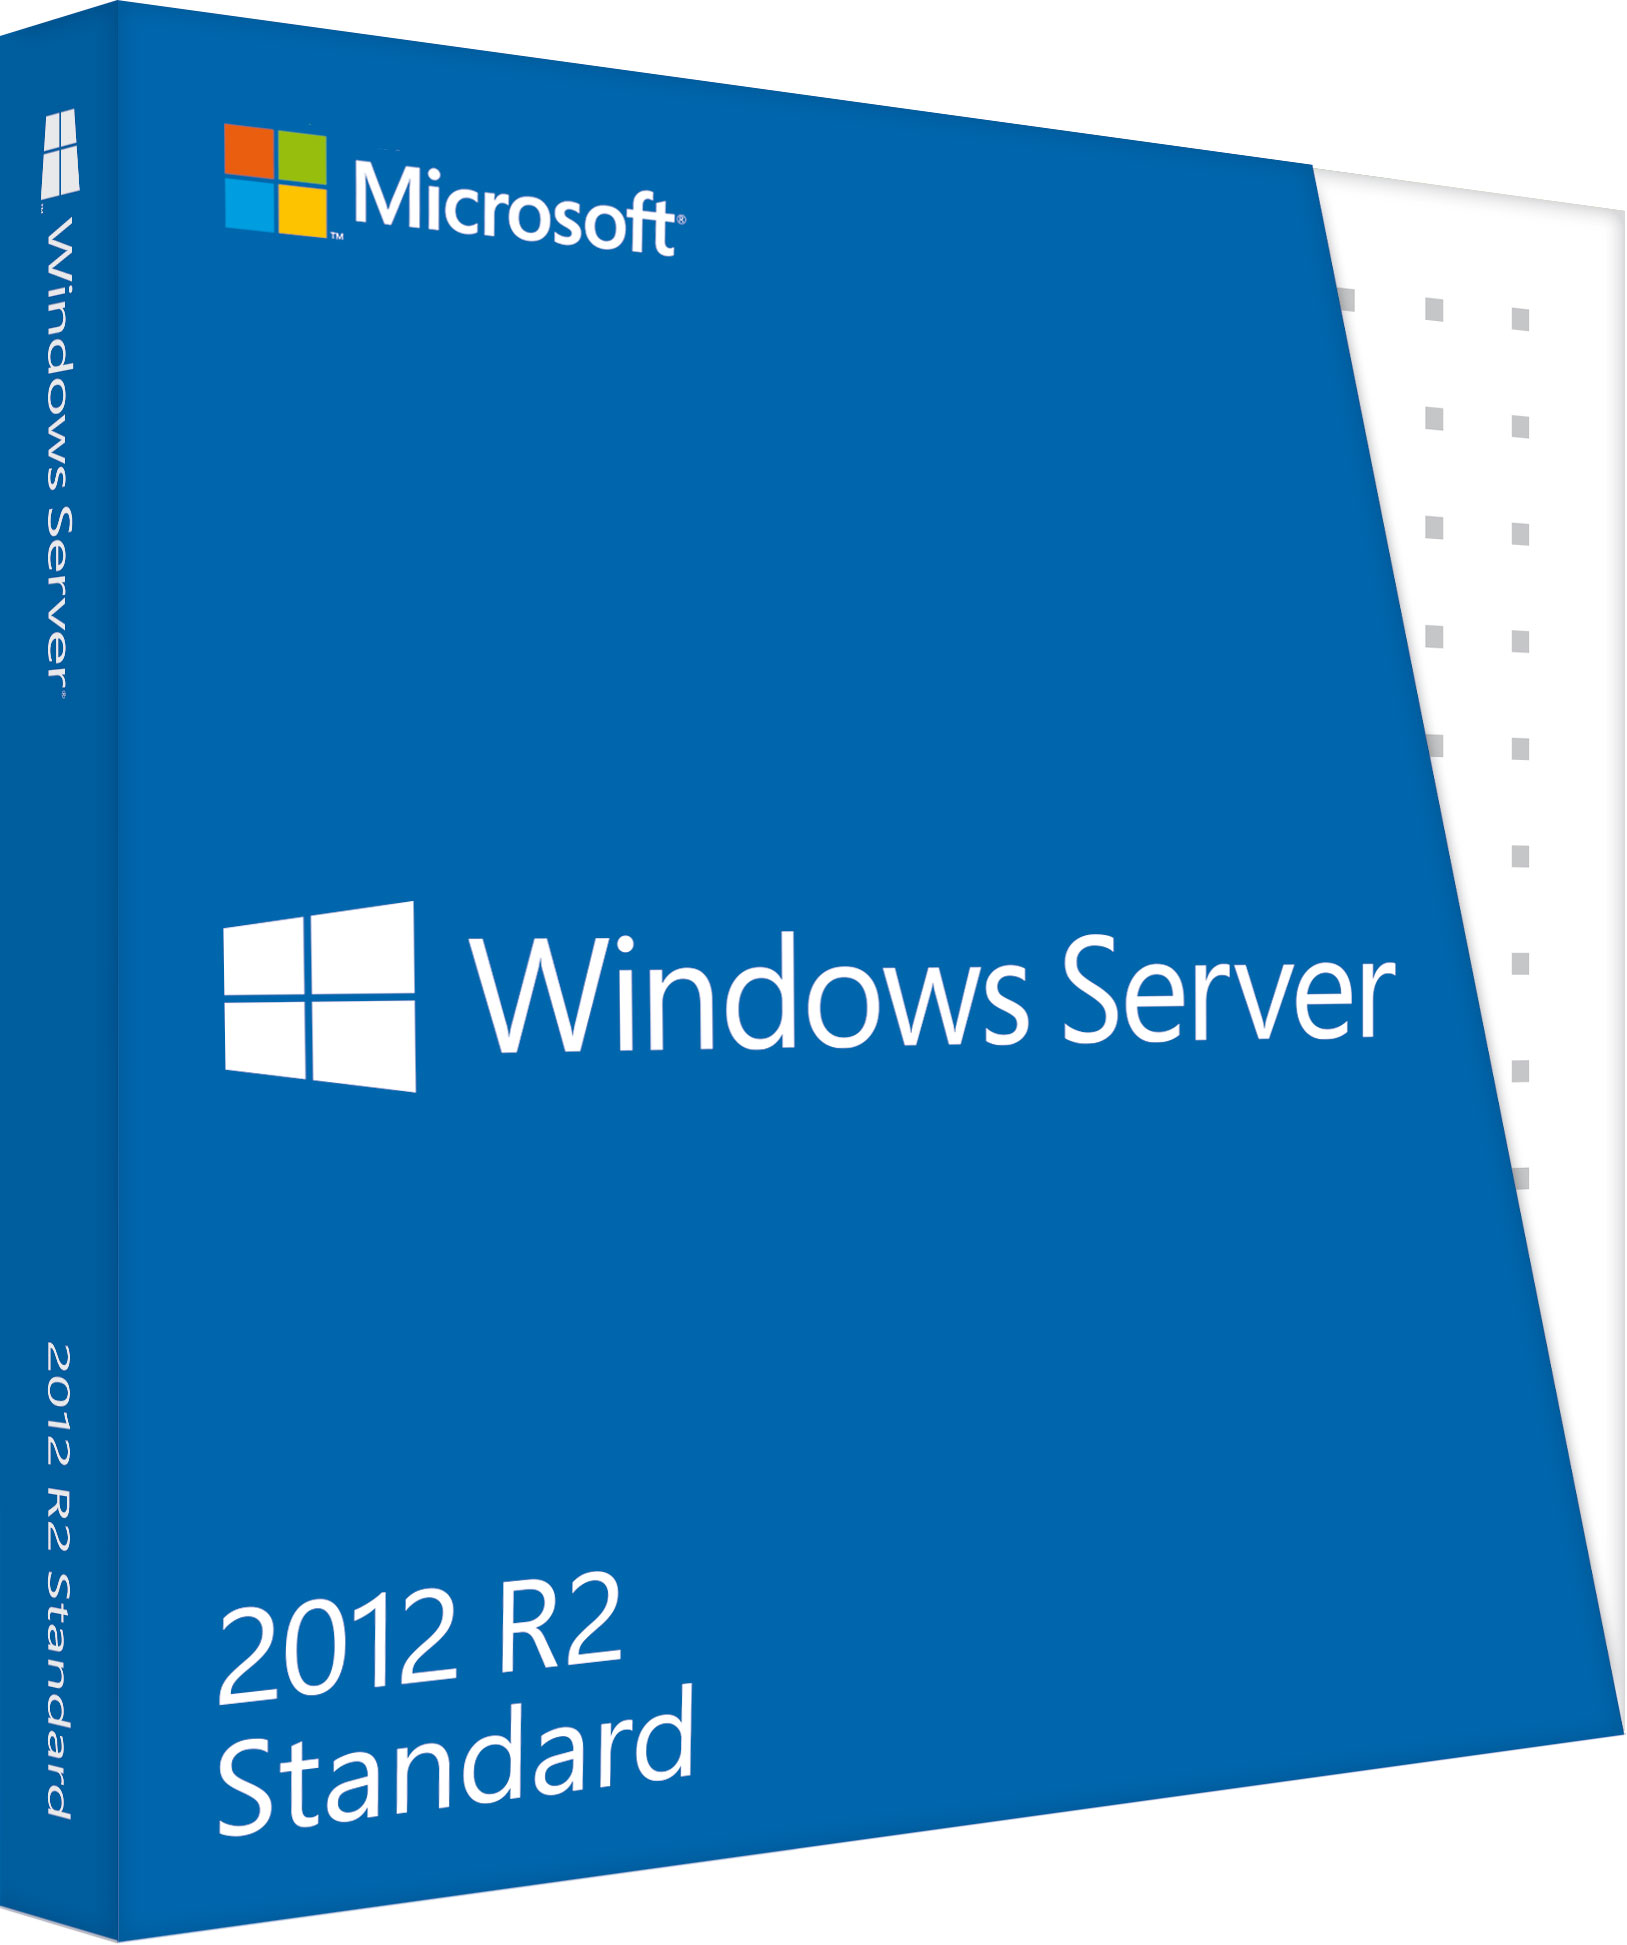 Решения на платформах Windows Server 2003/2008/2012